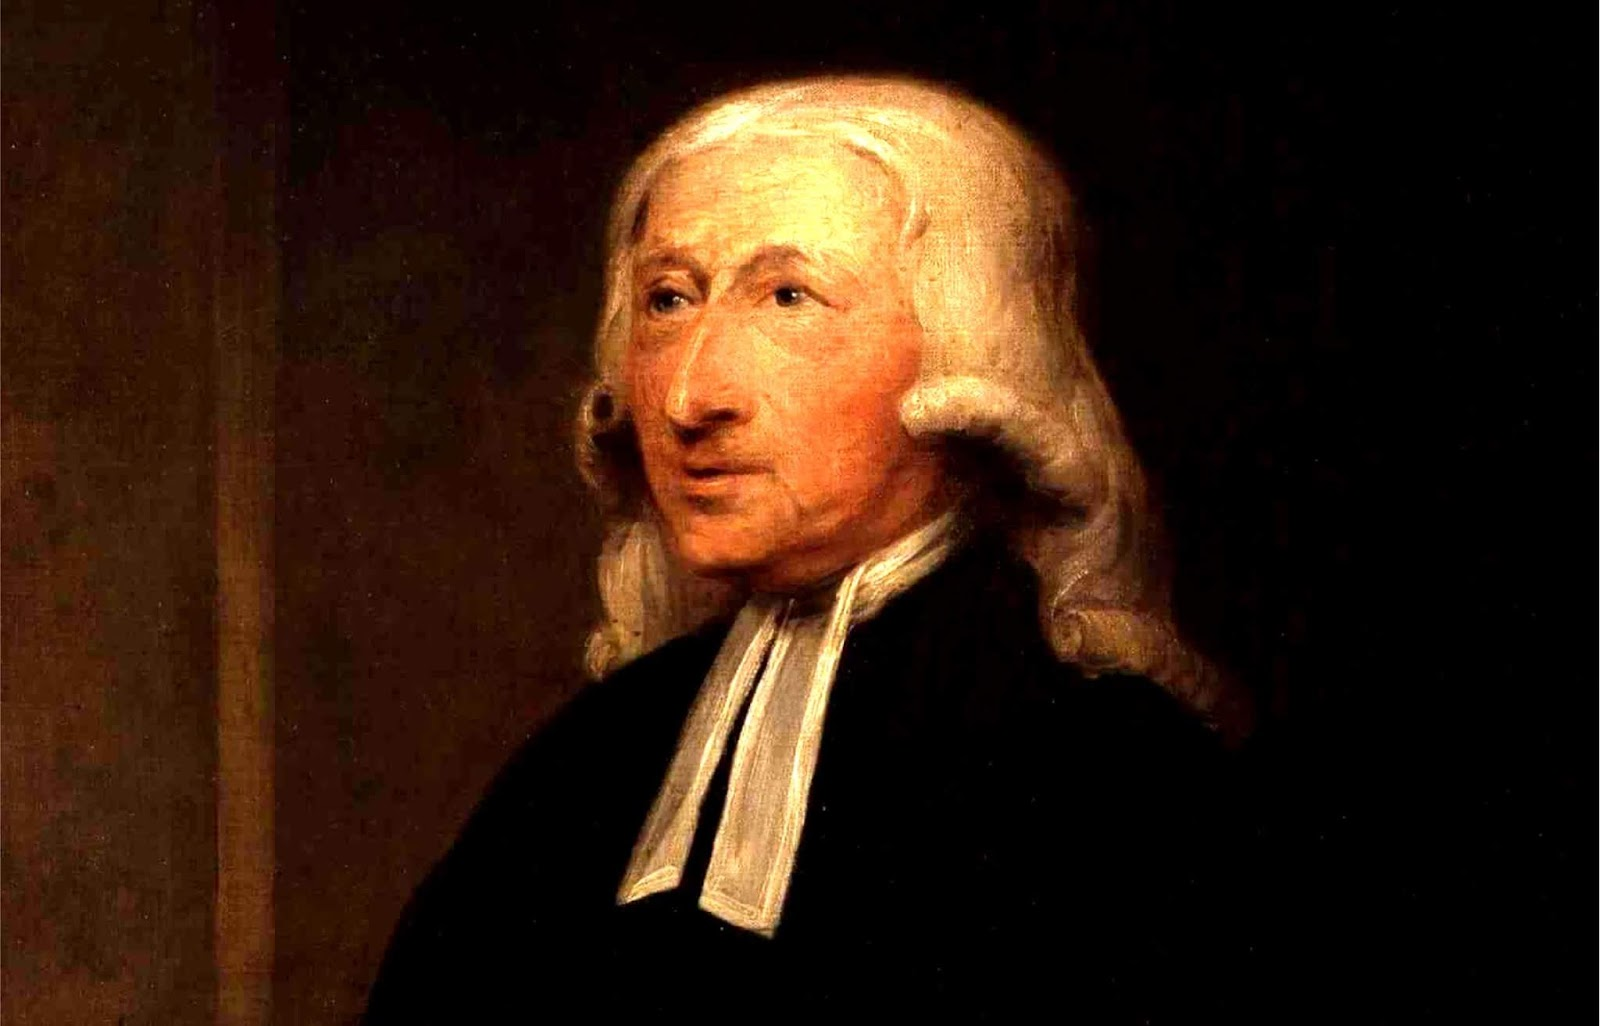 God's Generals - John Wesley and Methodism ... A Brand From The Burning (Part 1)